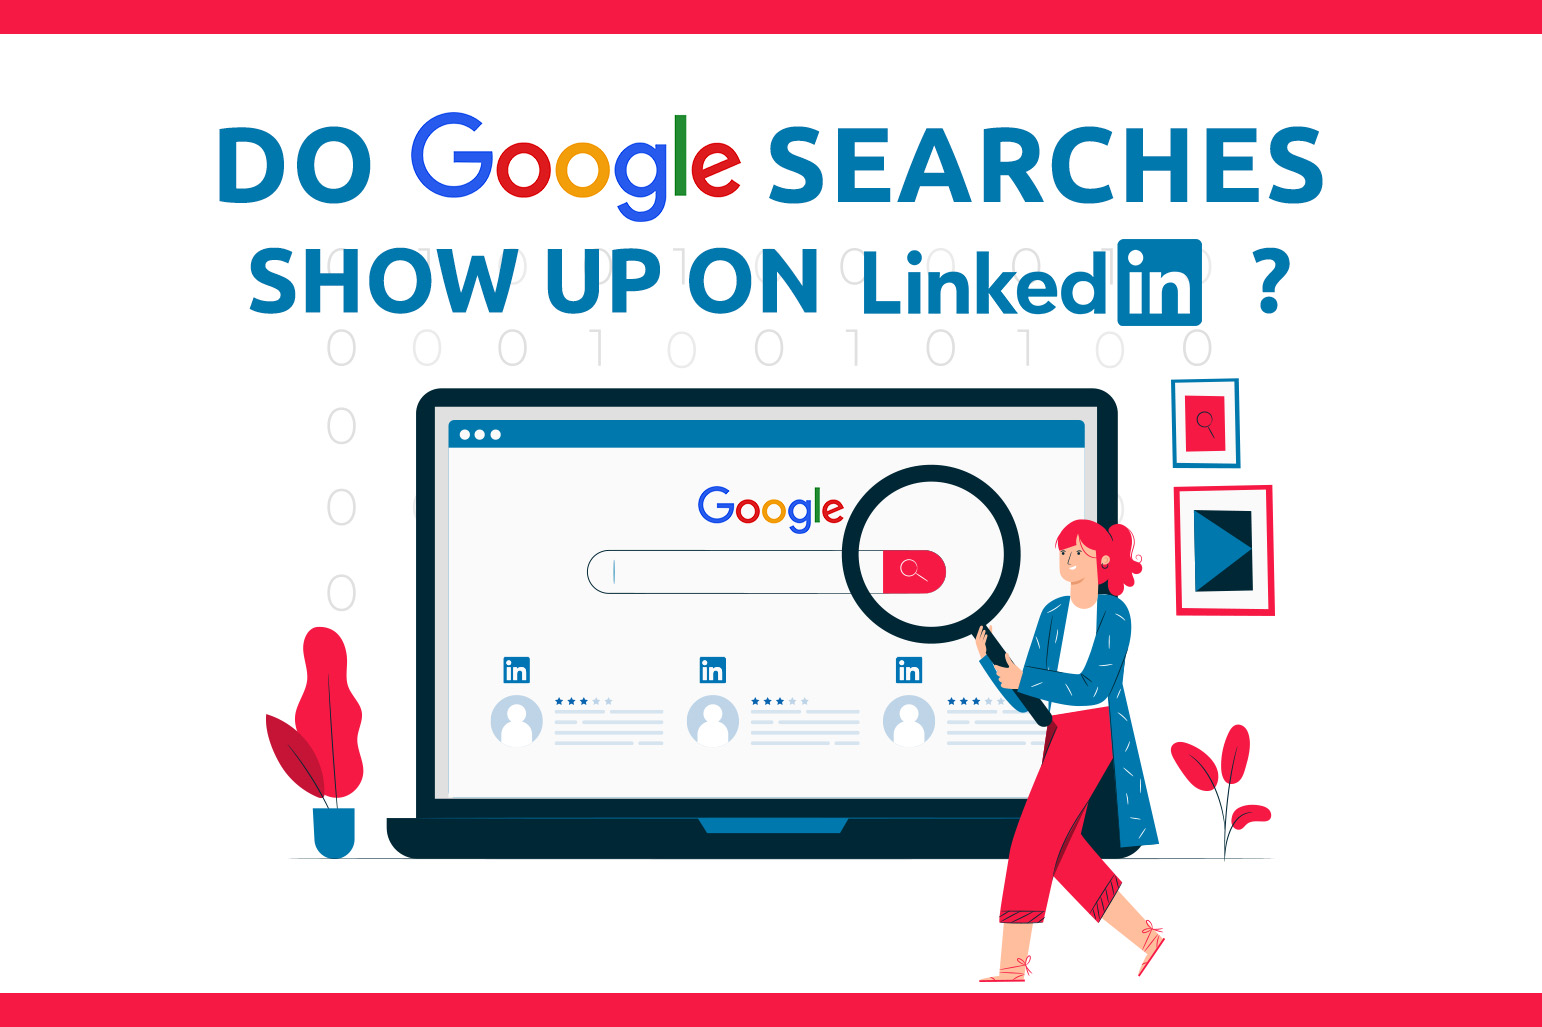 Do Google Searches Show Up On LinkedIn?